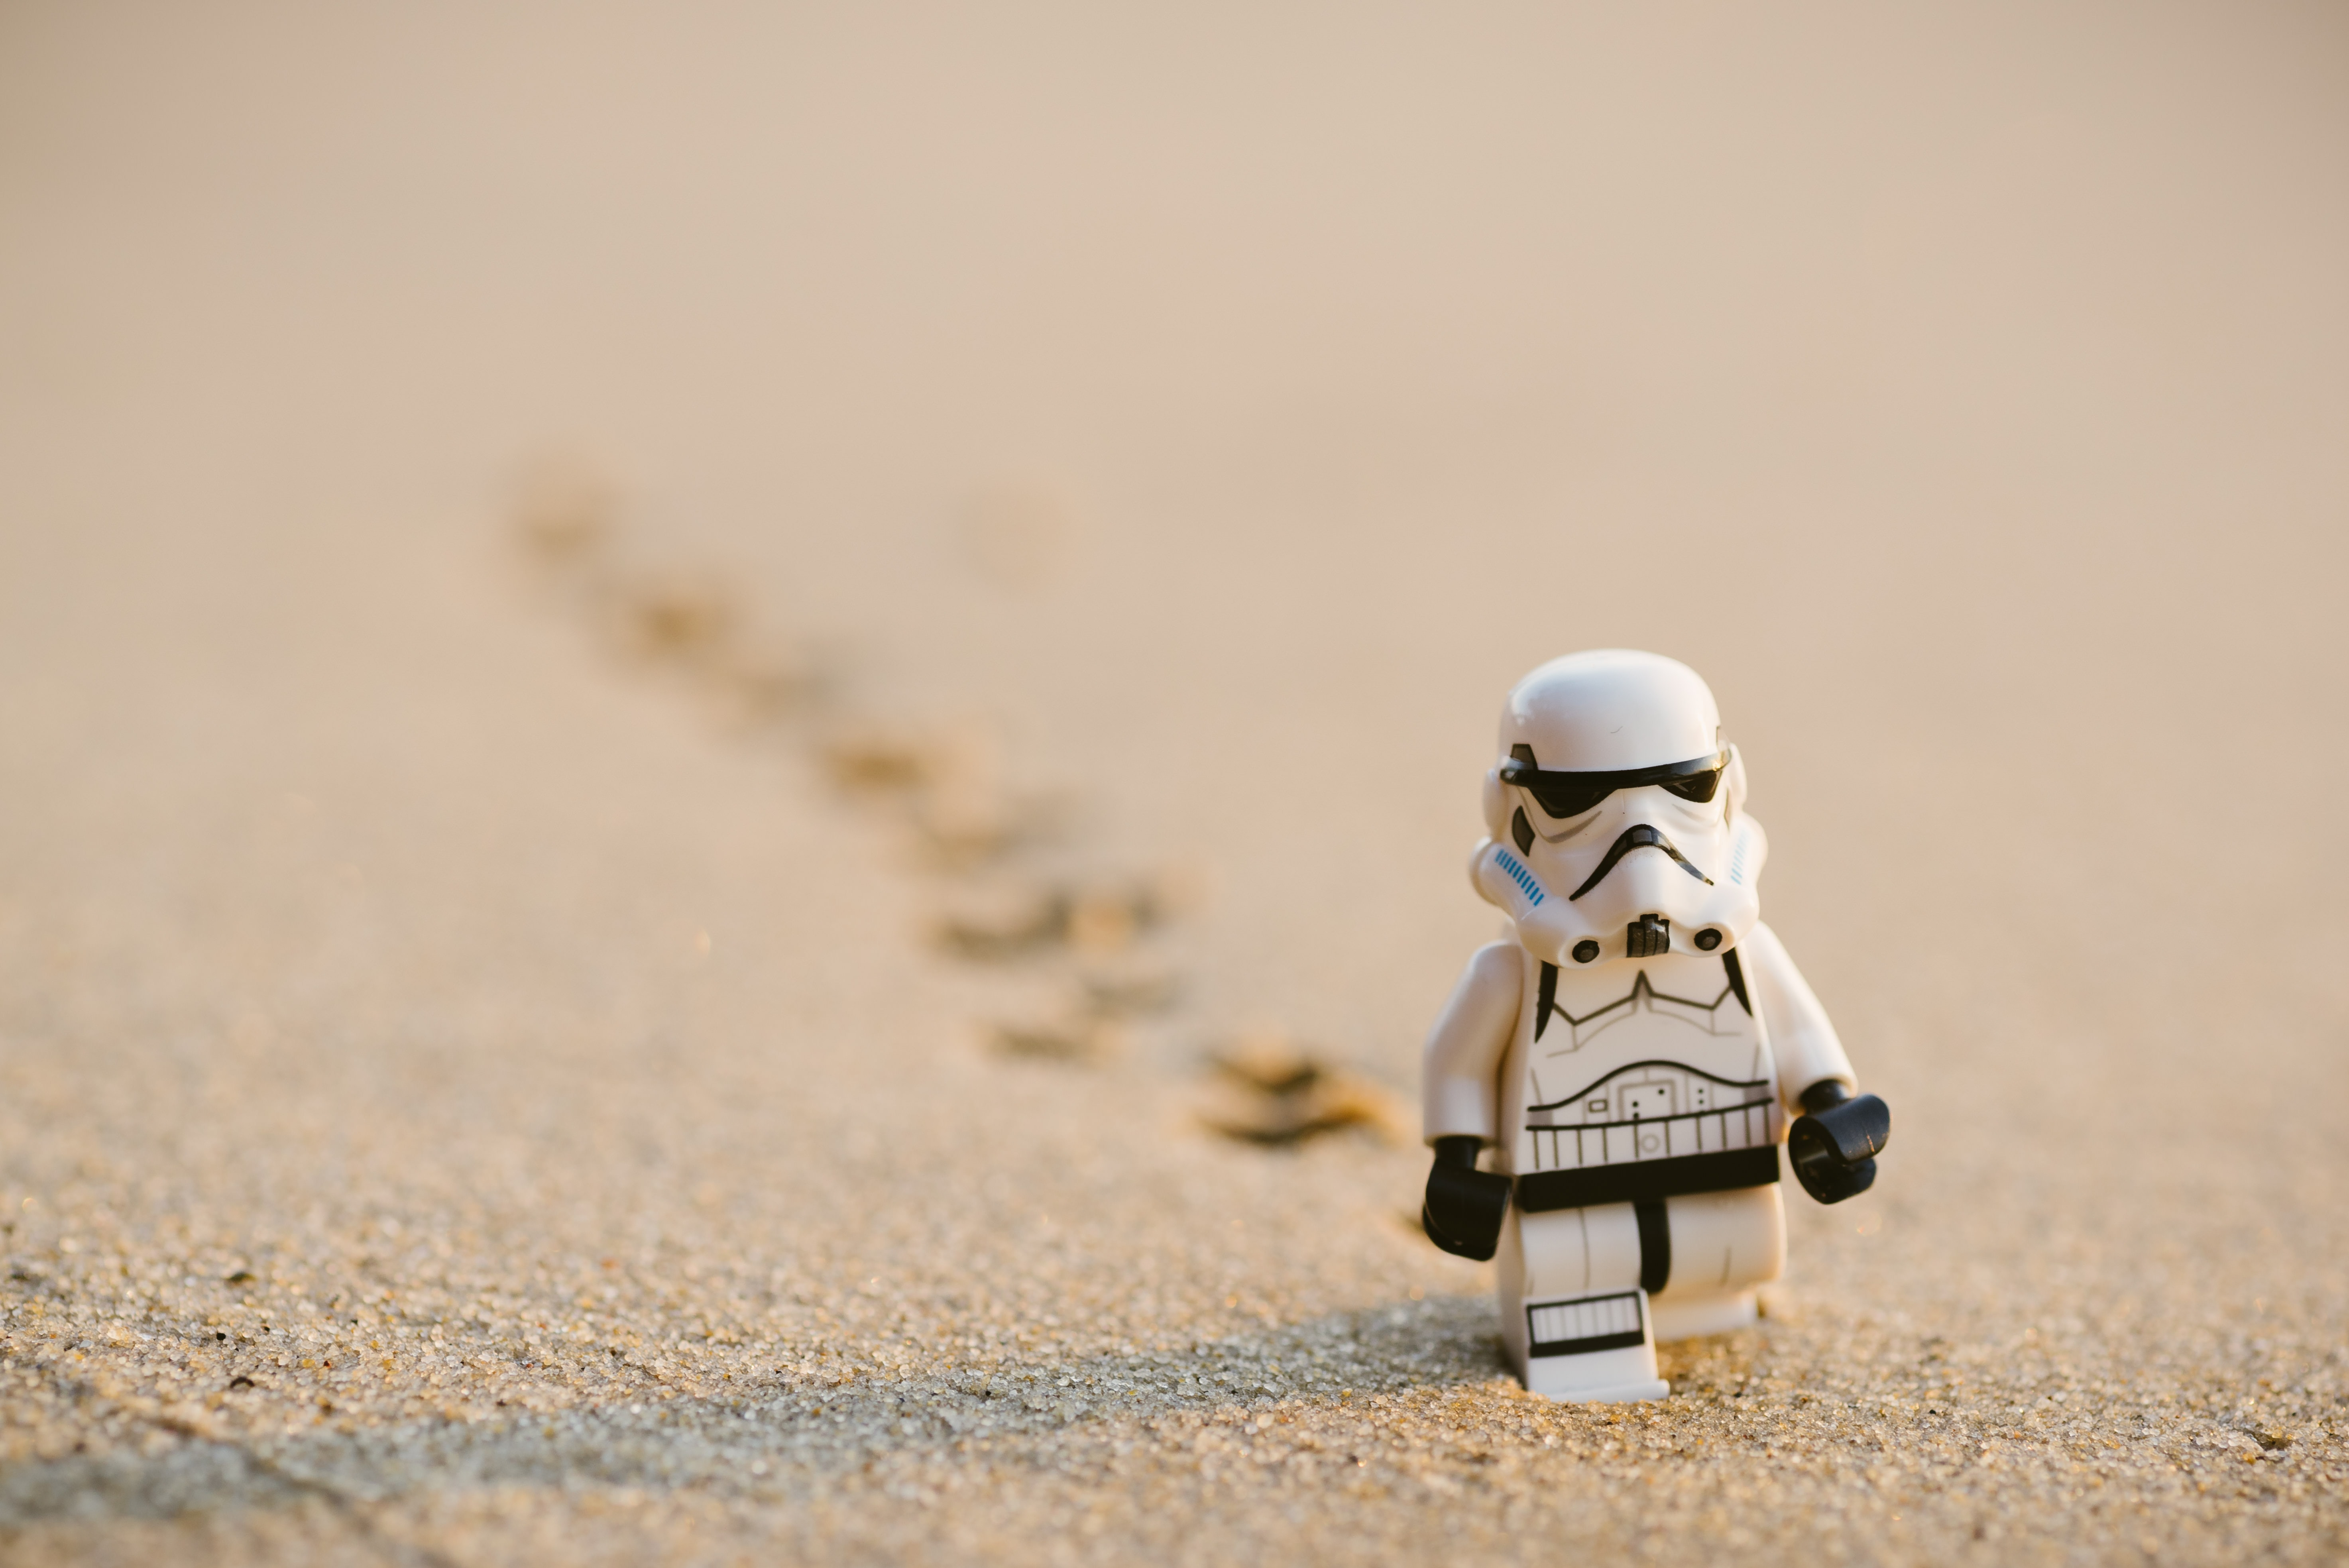 A Lego stormtrooper on sand